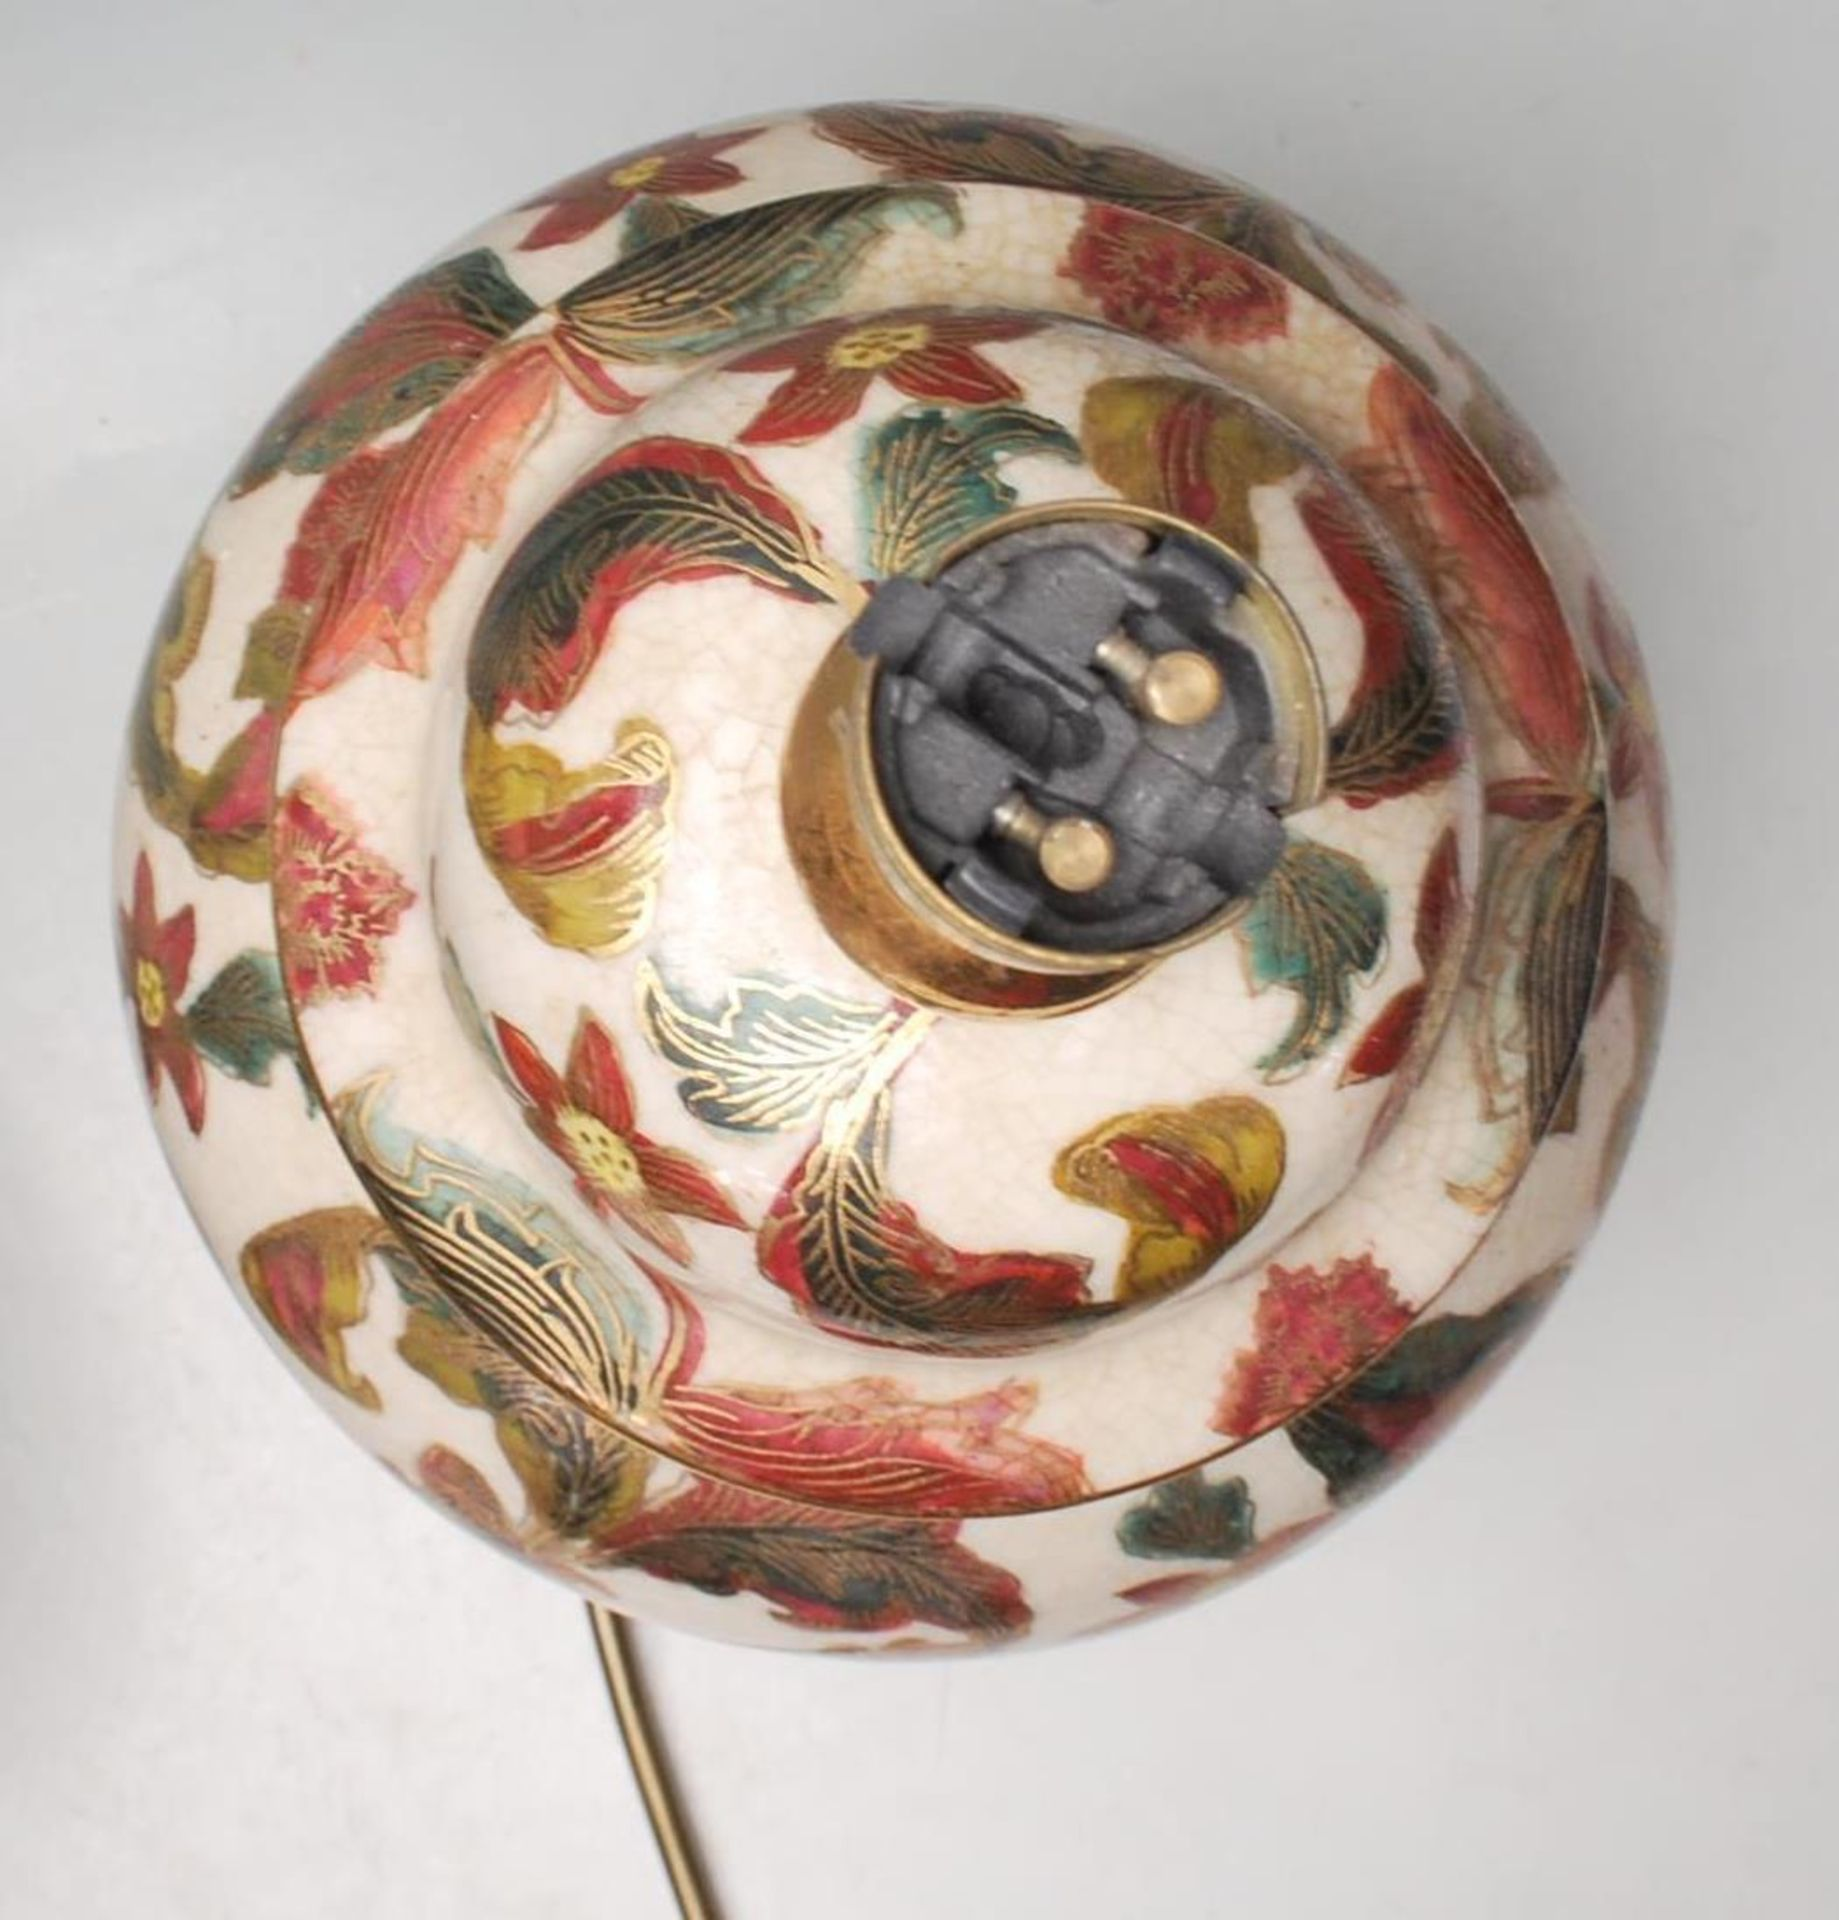 COLLECTION OF KUTANI / FAMILLE ROSE TABLE LAMPS - Image 6 of 7